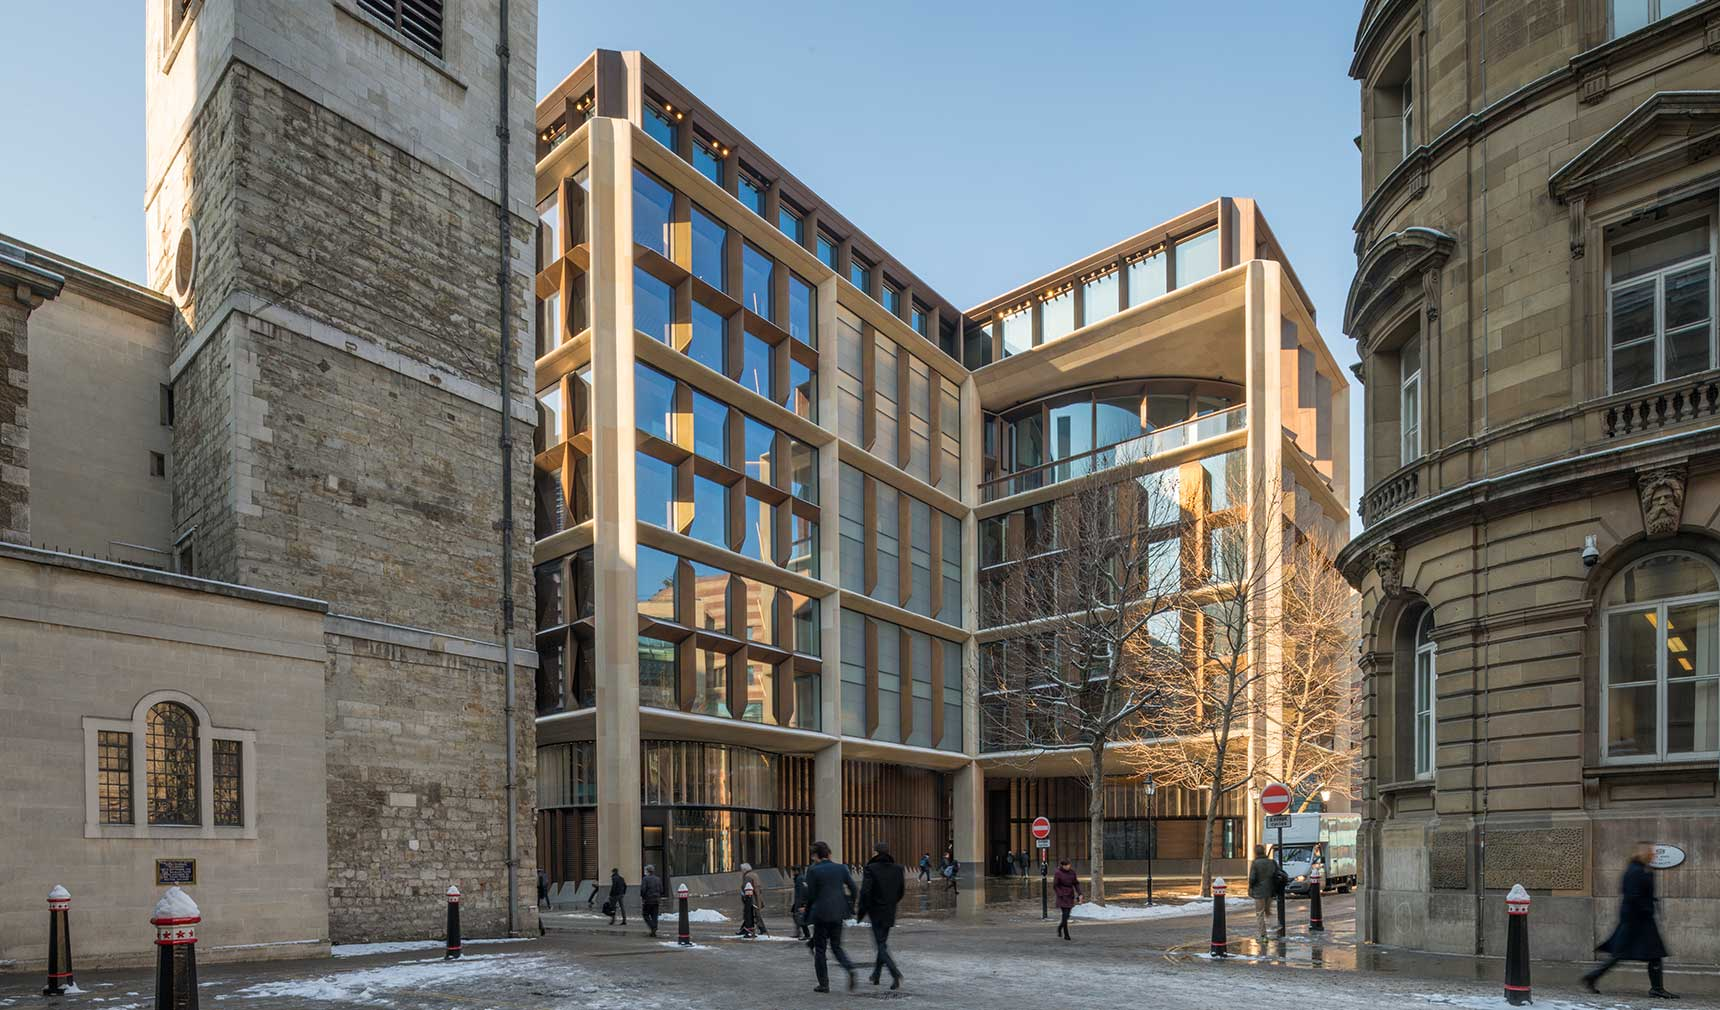 Foster + Partners have scooped the RIBA Stirling Prize for their Bloomberg HQ